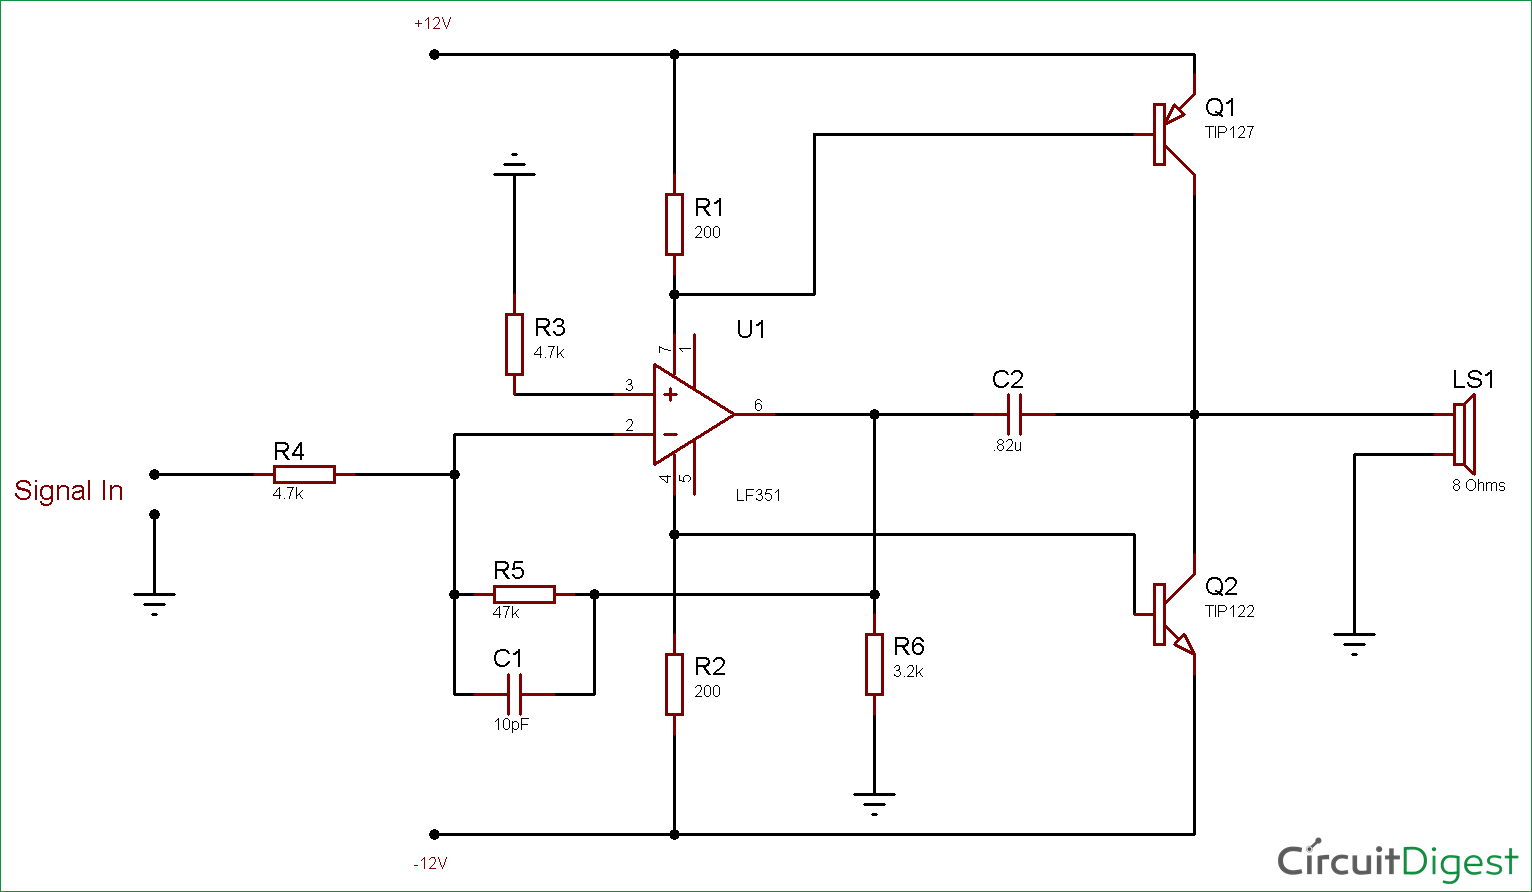 10 Watt Audio Amplifier Circuit Diagram Using Op Amp And Power Transistors